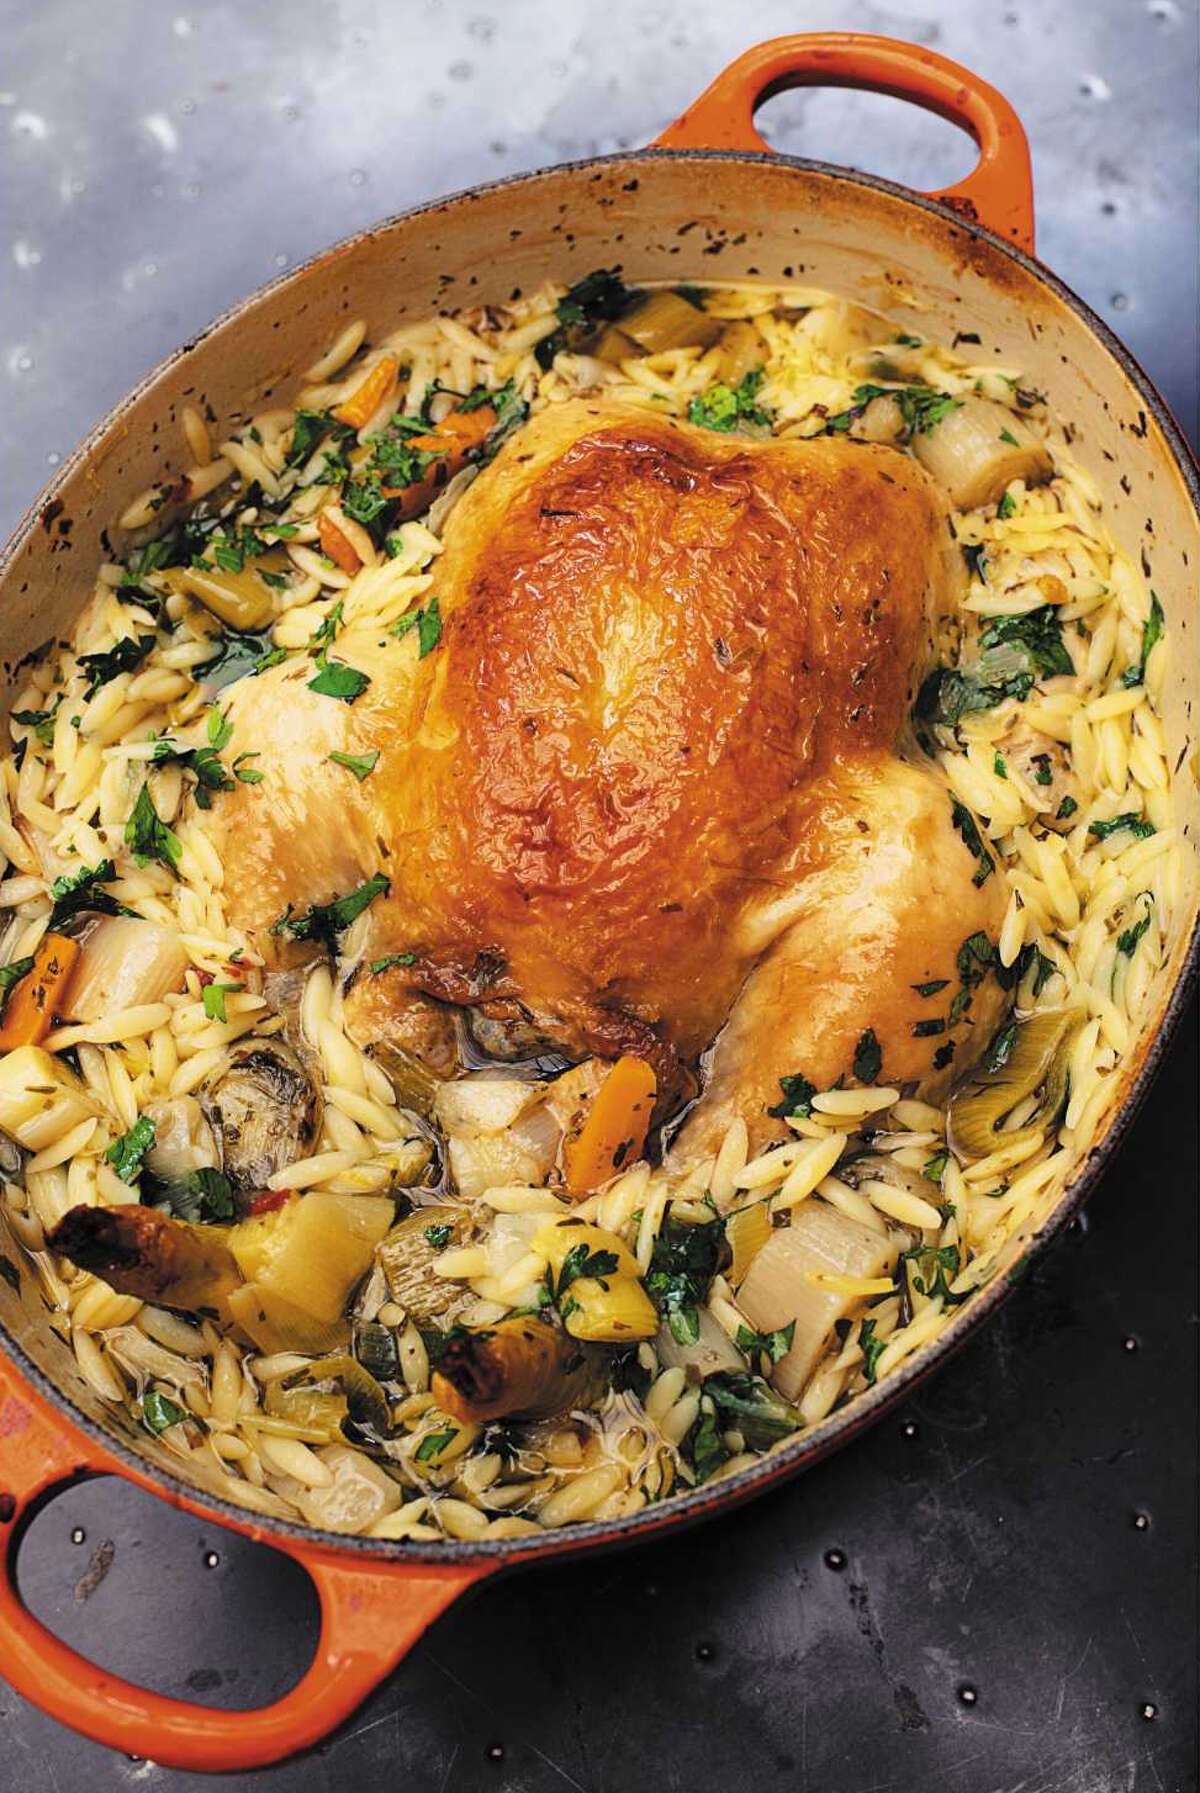 """Chicken in a Pot with Lemon and Orzo from """"Cook, Eat, Repeat: Ingredients, Recipes, and Stories"""" by Nigella Lawson."""